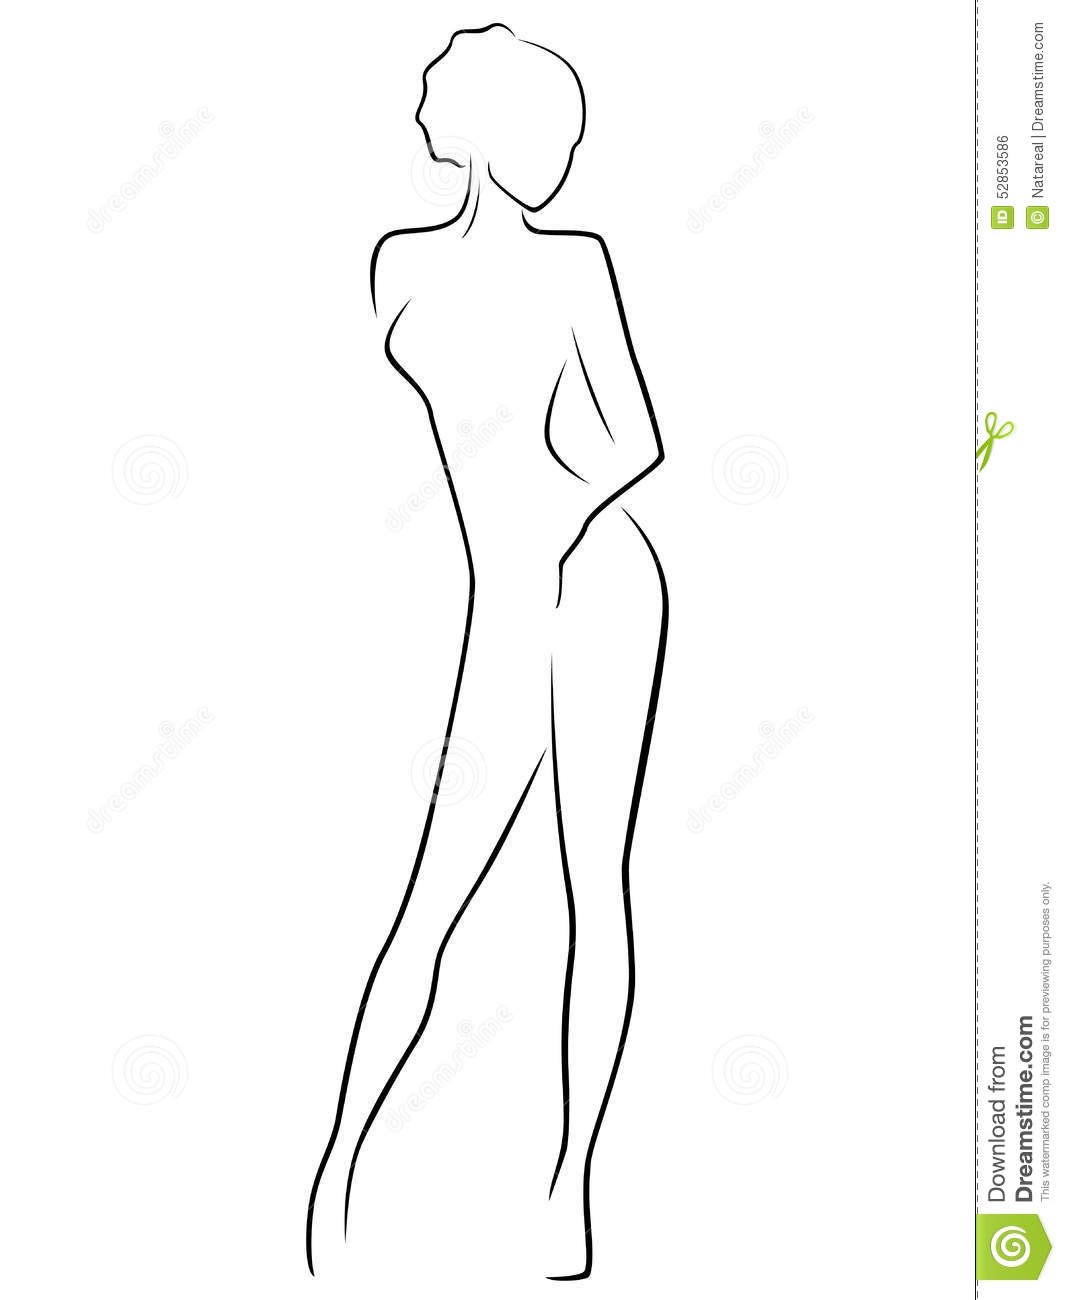 Abstract Slim Female Body Illustration 52853586 Megapixl